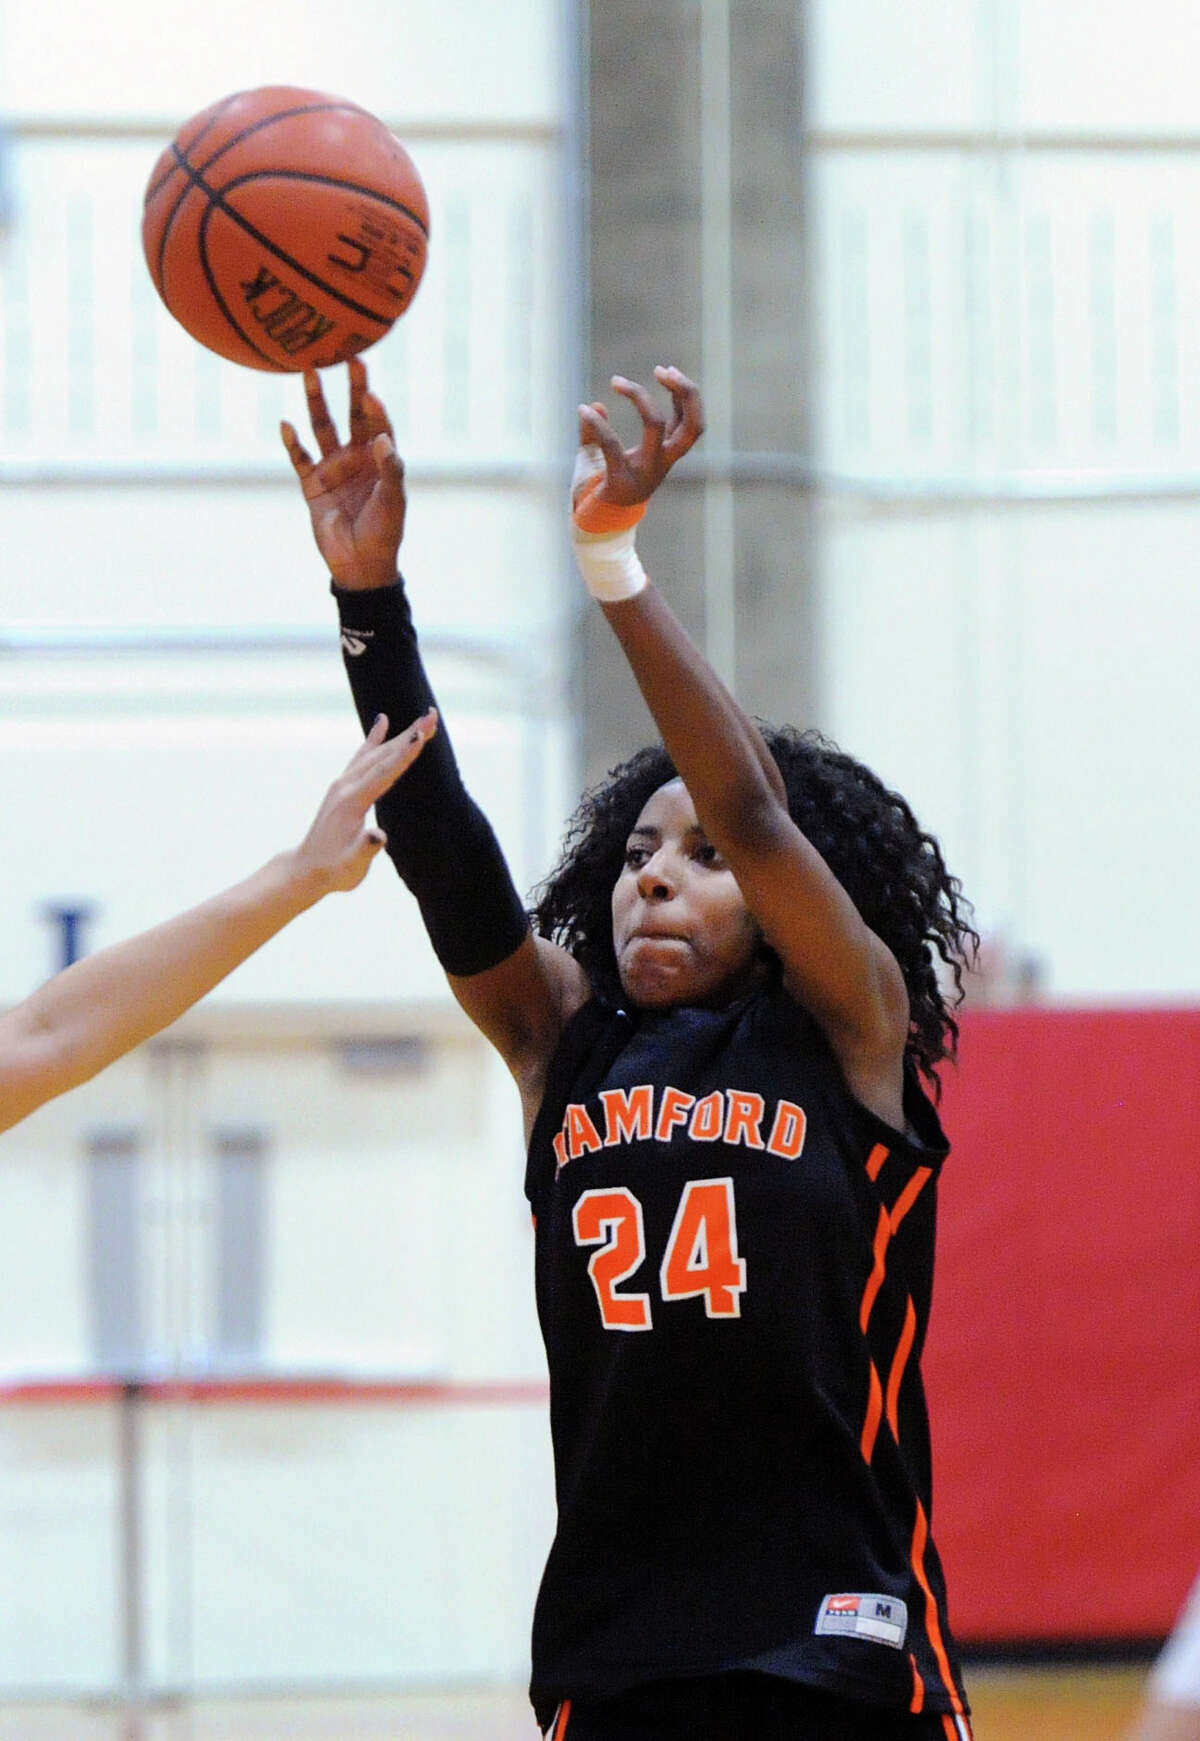 A hand in her face by a Greenwich defender does not stop Stamford's Tiana England (#24) from scoring on a jump-shot during the girls high school basketball game between Greenwich High School and Stamford High School at Greenwich, Conn., Wednesday, Feb. 3, 2016.